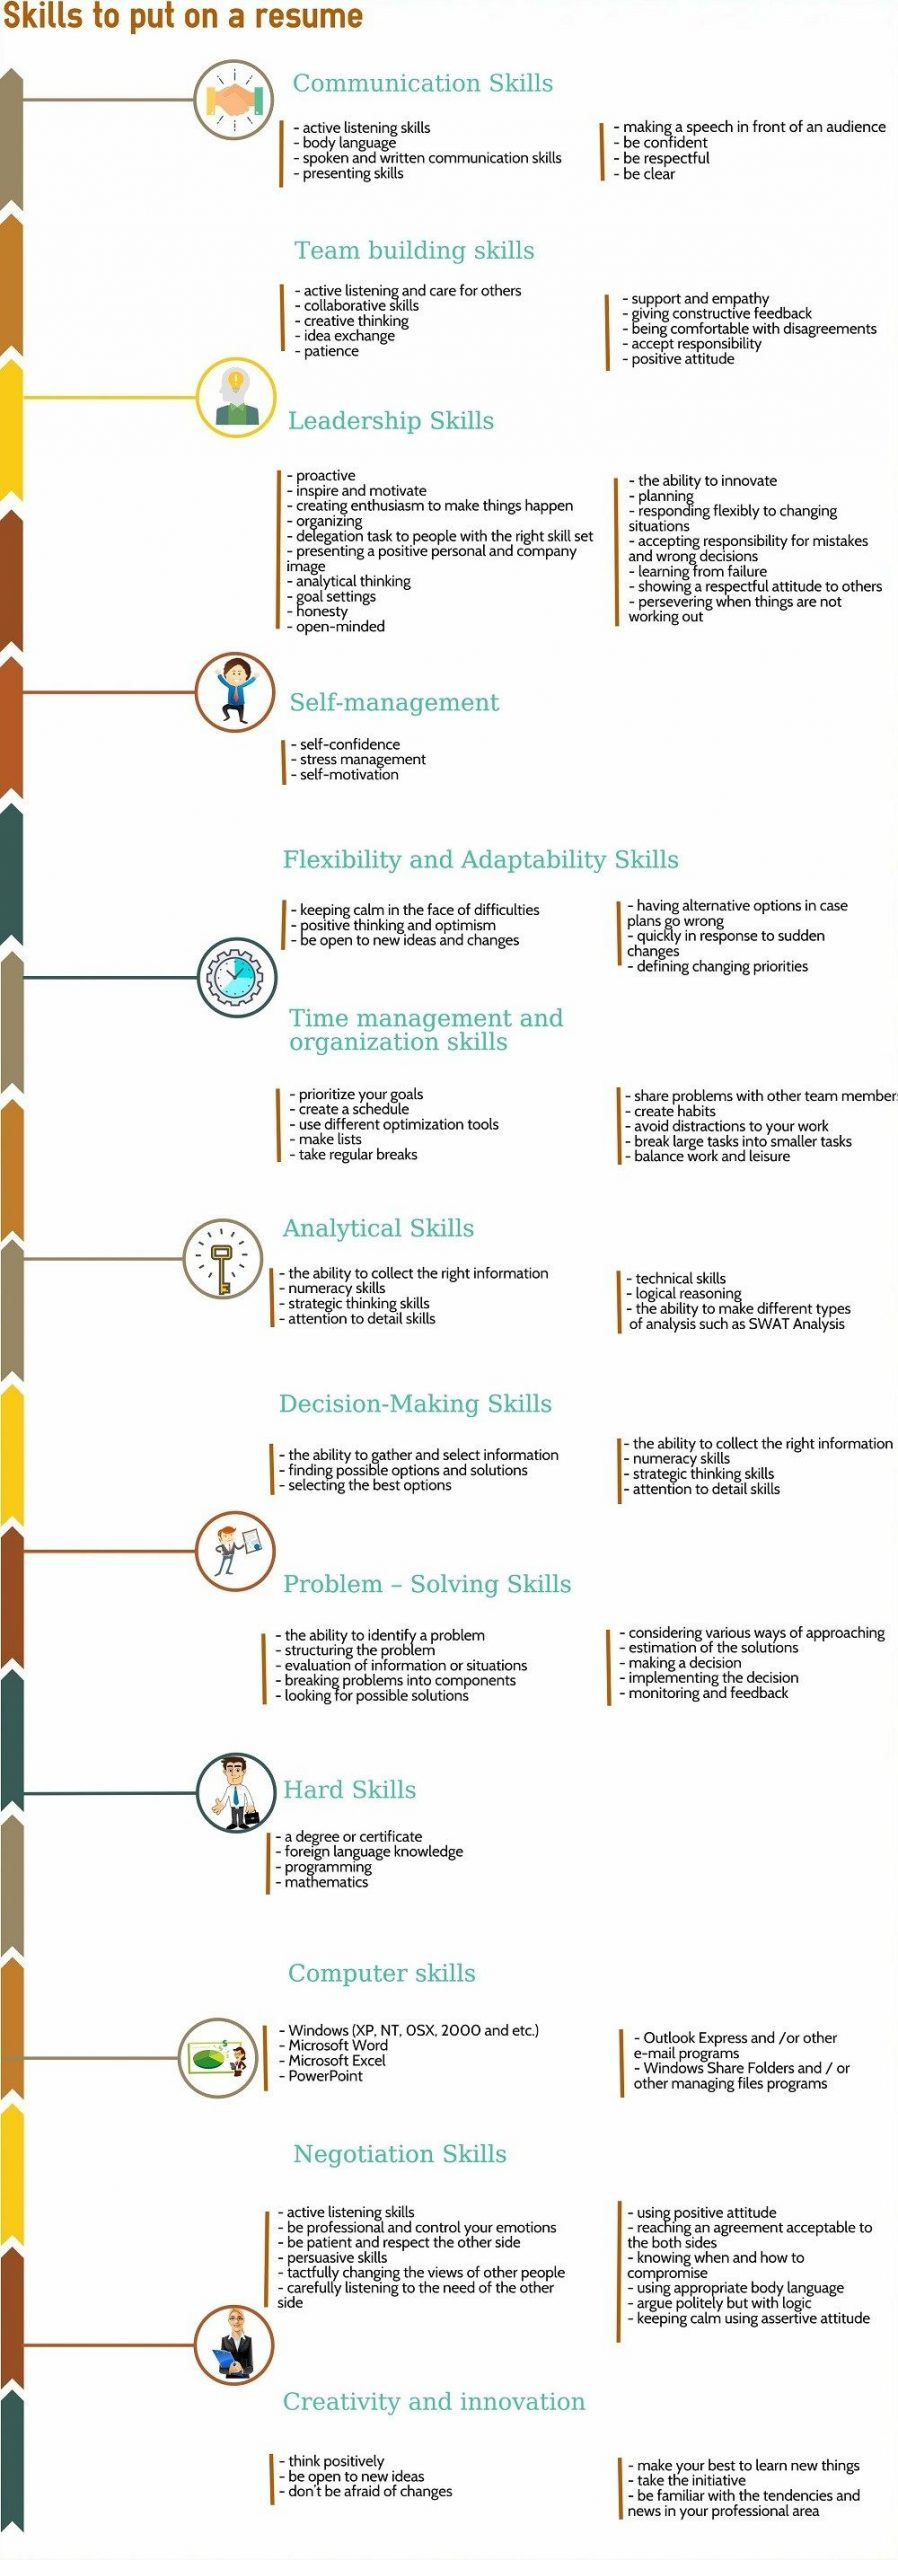 skills to put on a resume Infographic